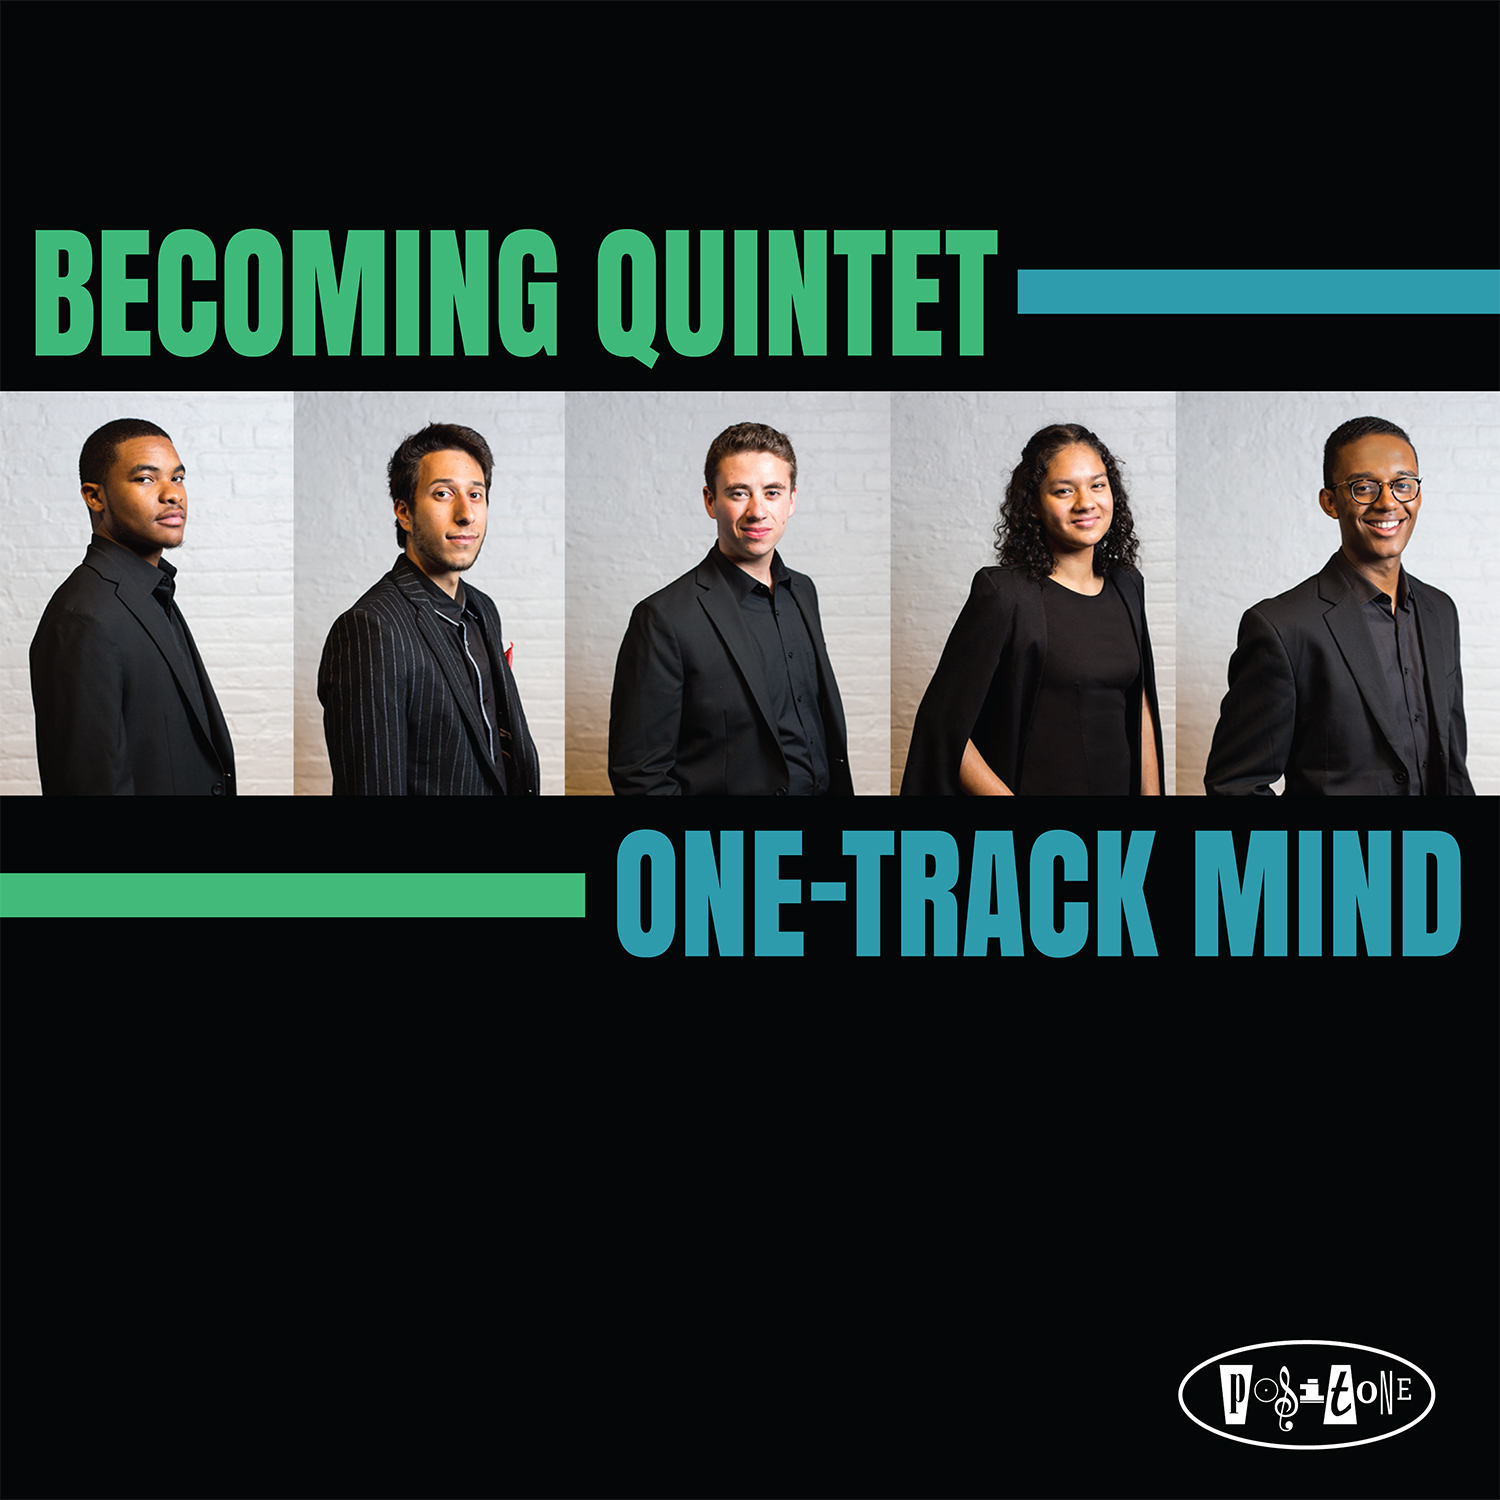 Becoming Quintet - One-Track Mind cover.jpg